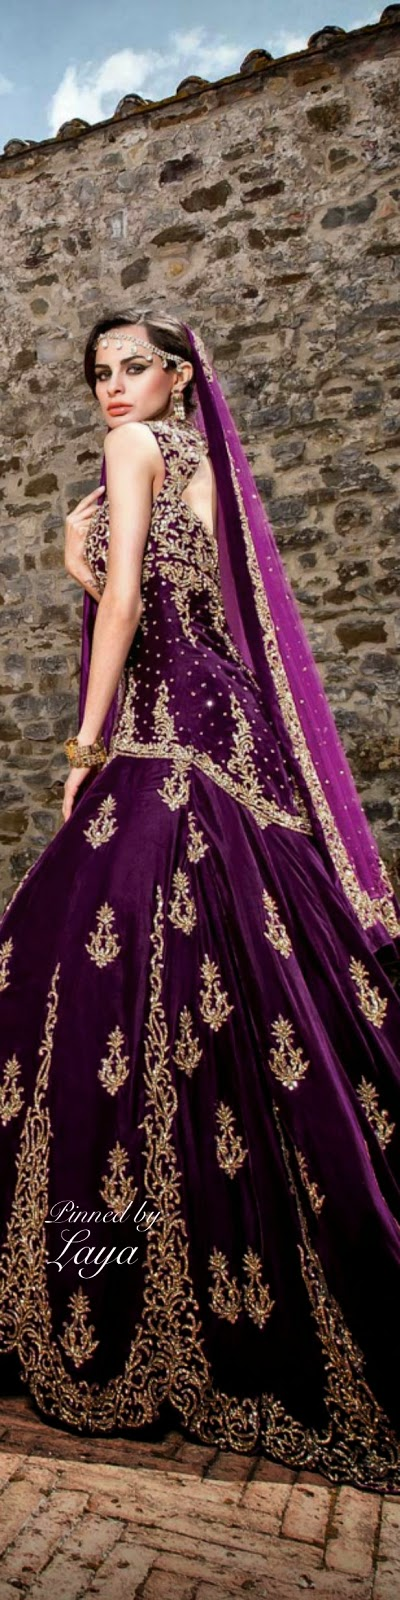 bridal lehnga design 2015